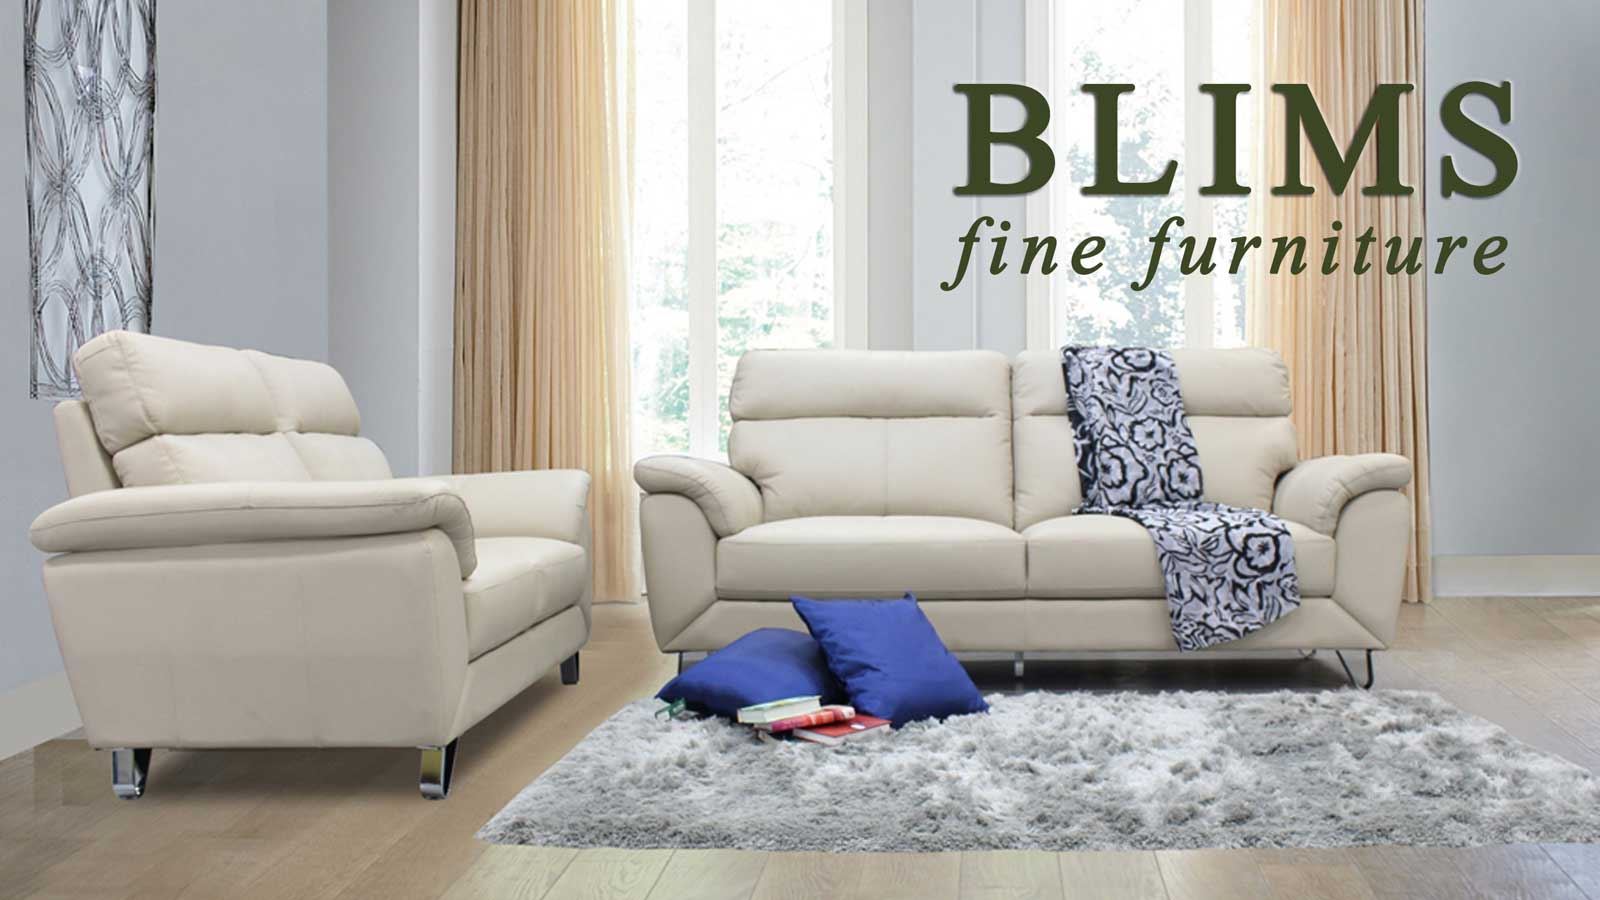 Turns dream homes into reality with Blims' 40th anniversary sale